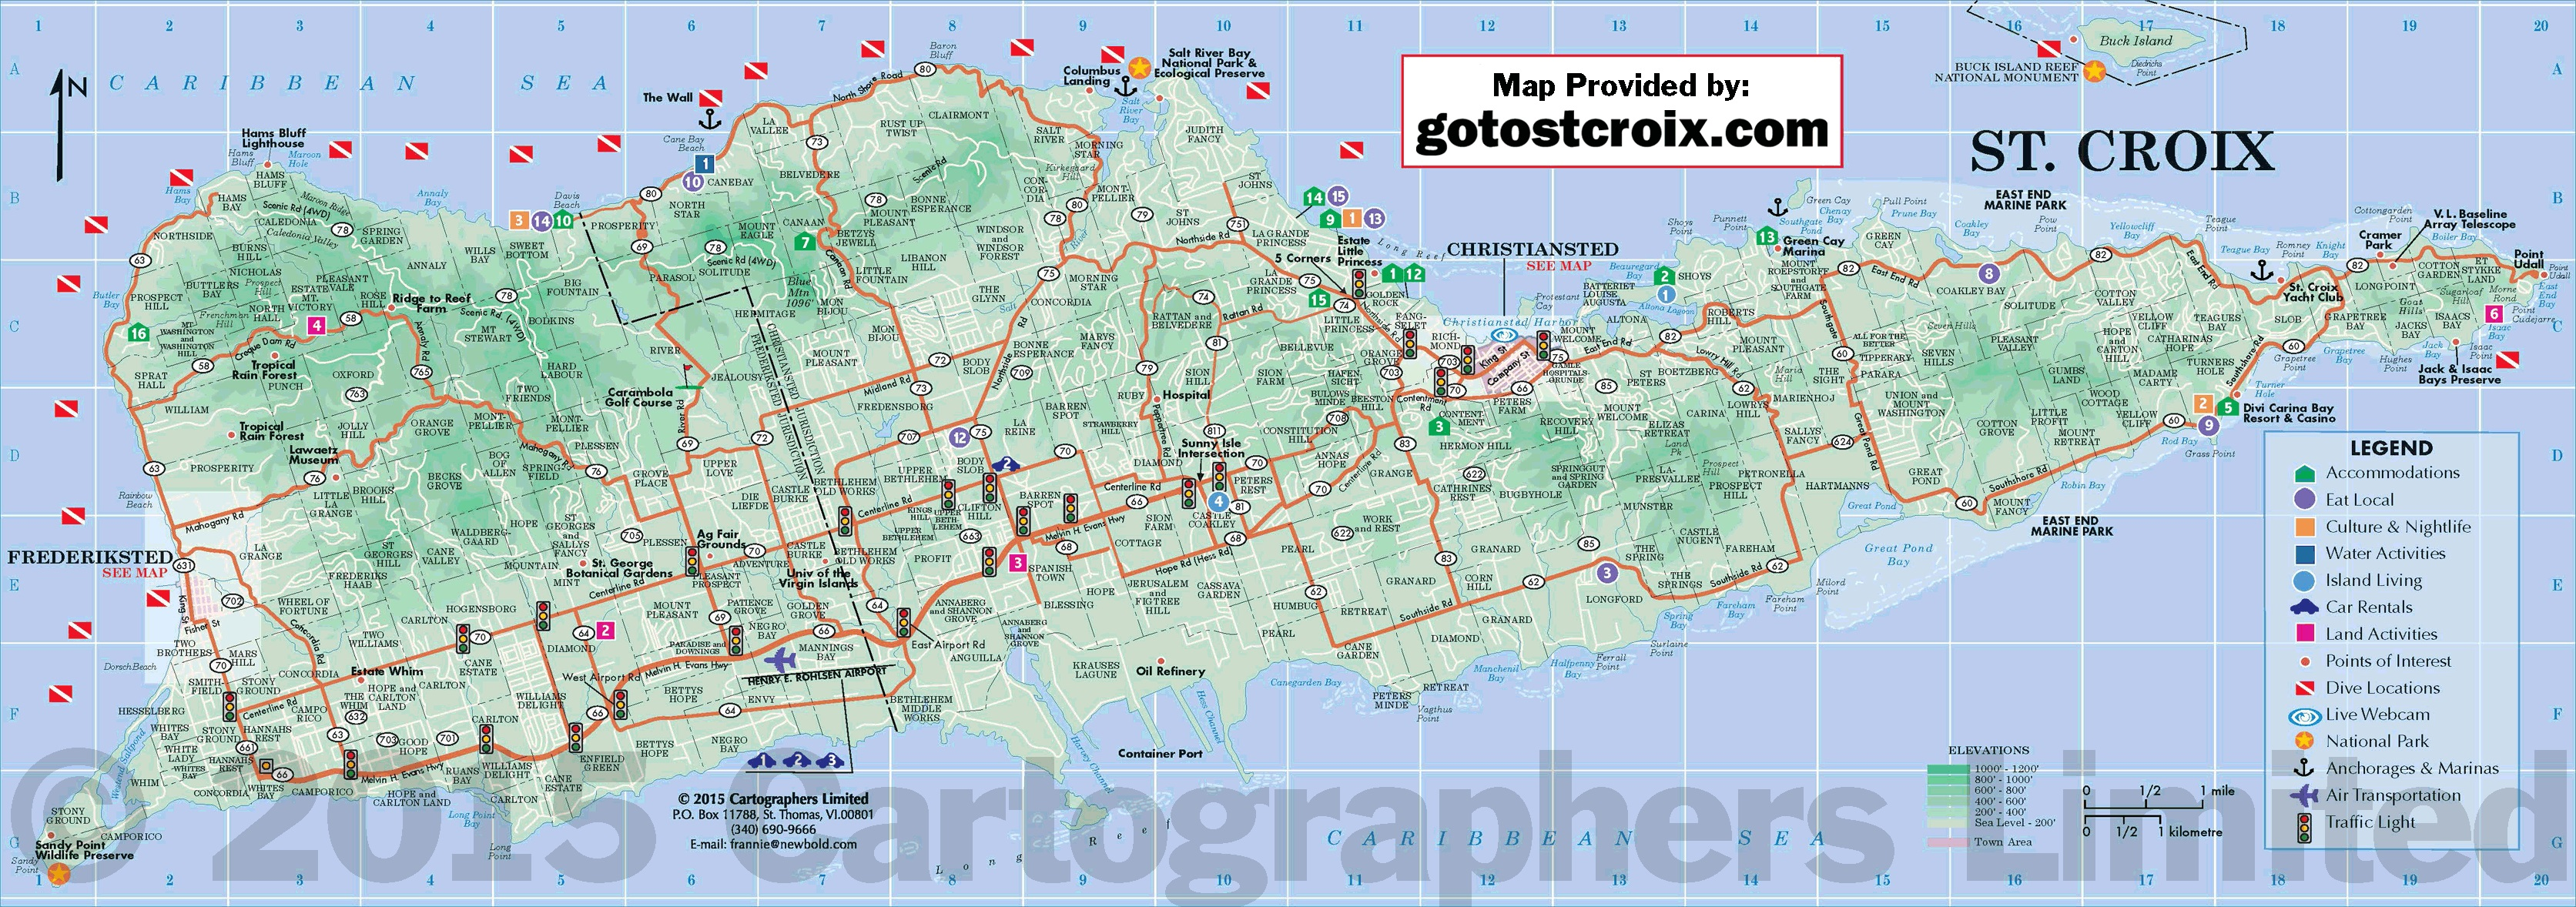 St Croix Map St Croix Map, US Virgin Islands Map | Where is St Croix? St Croix Map